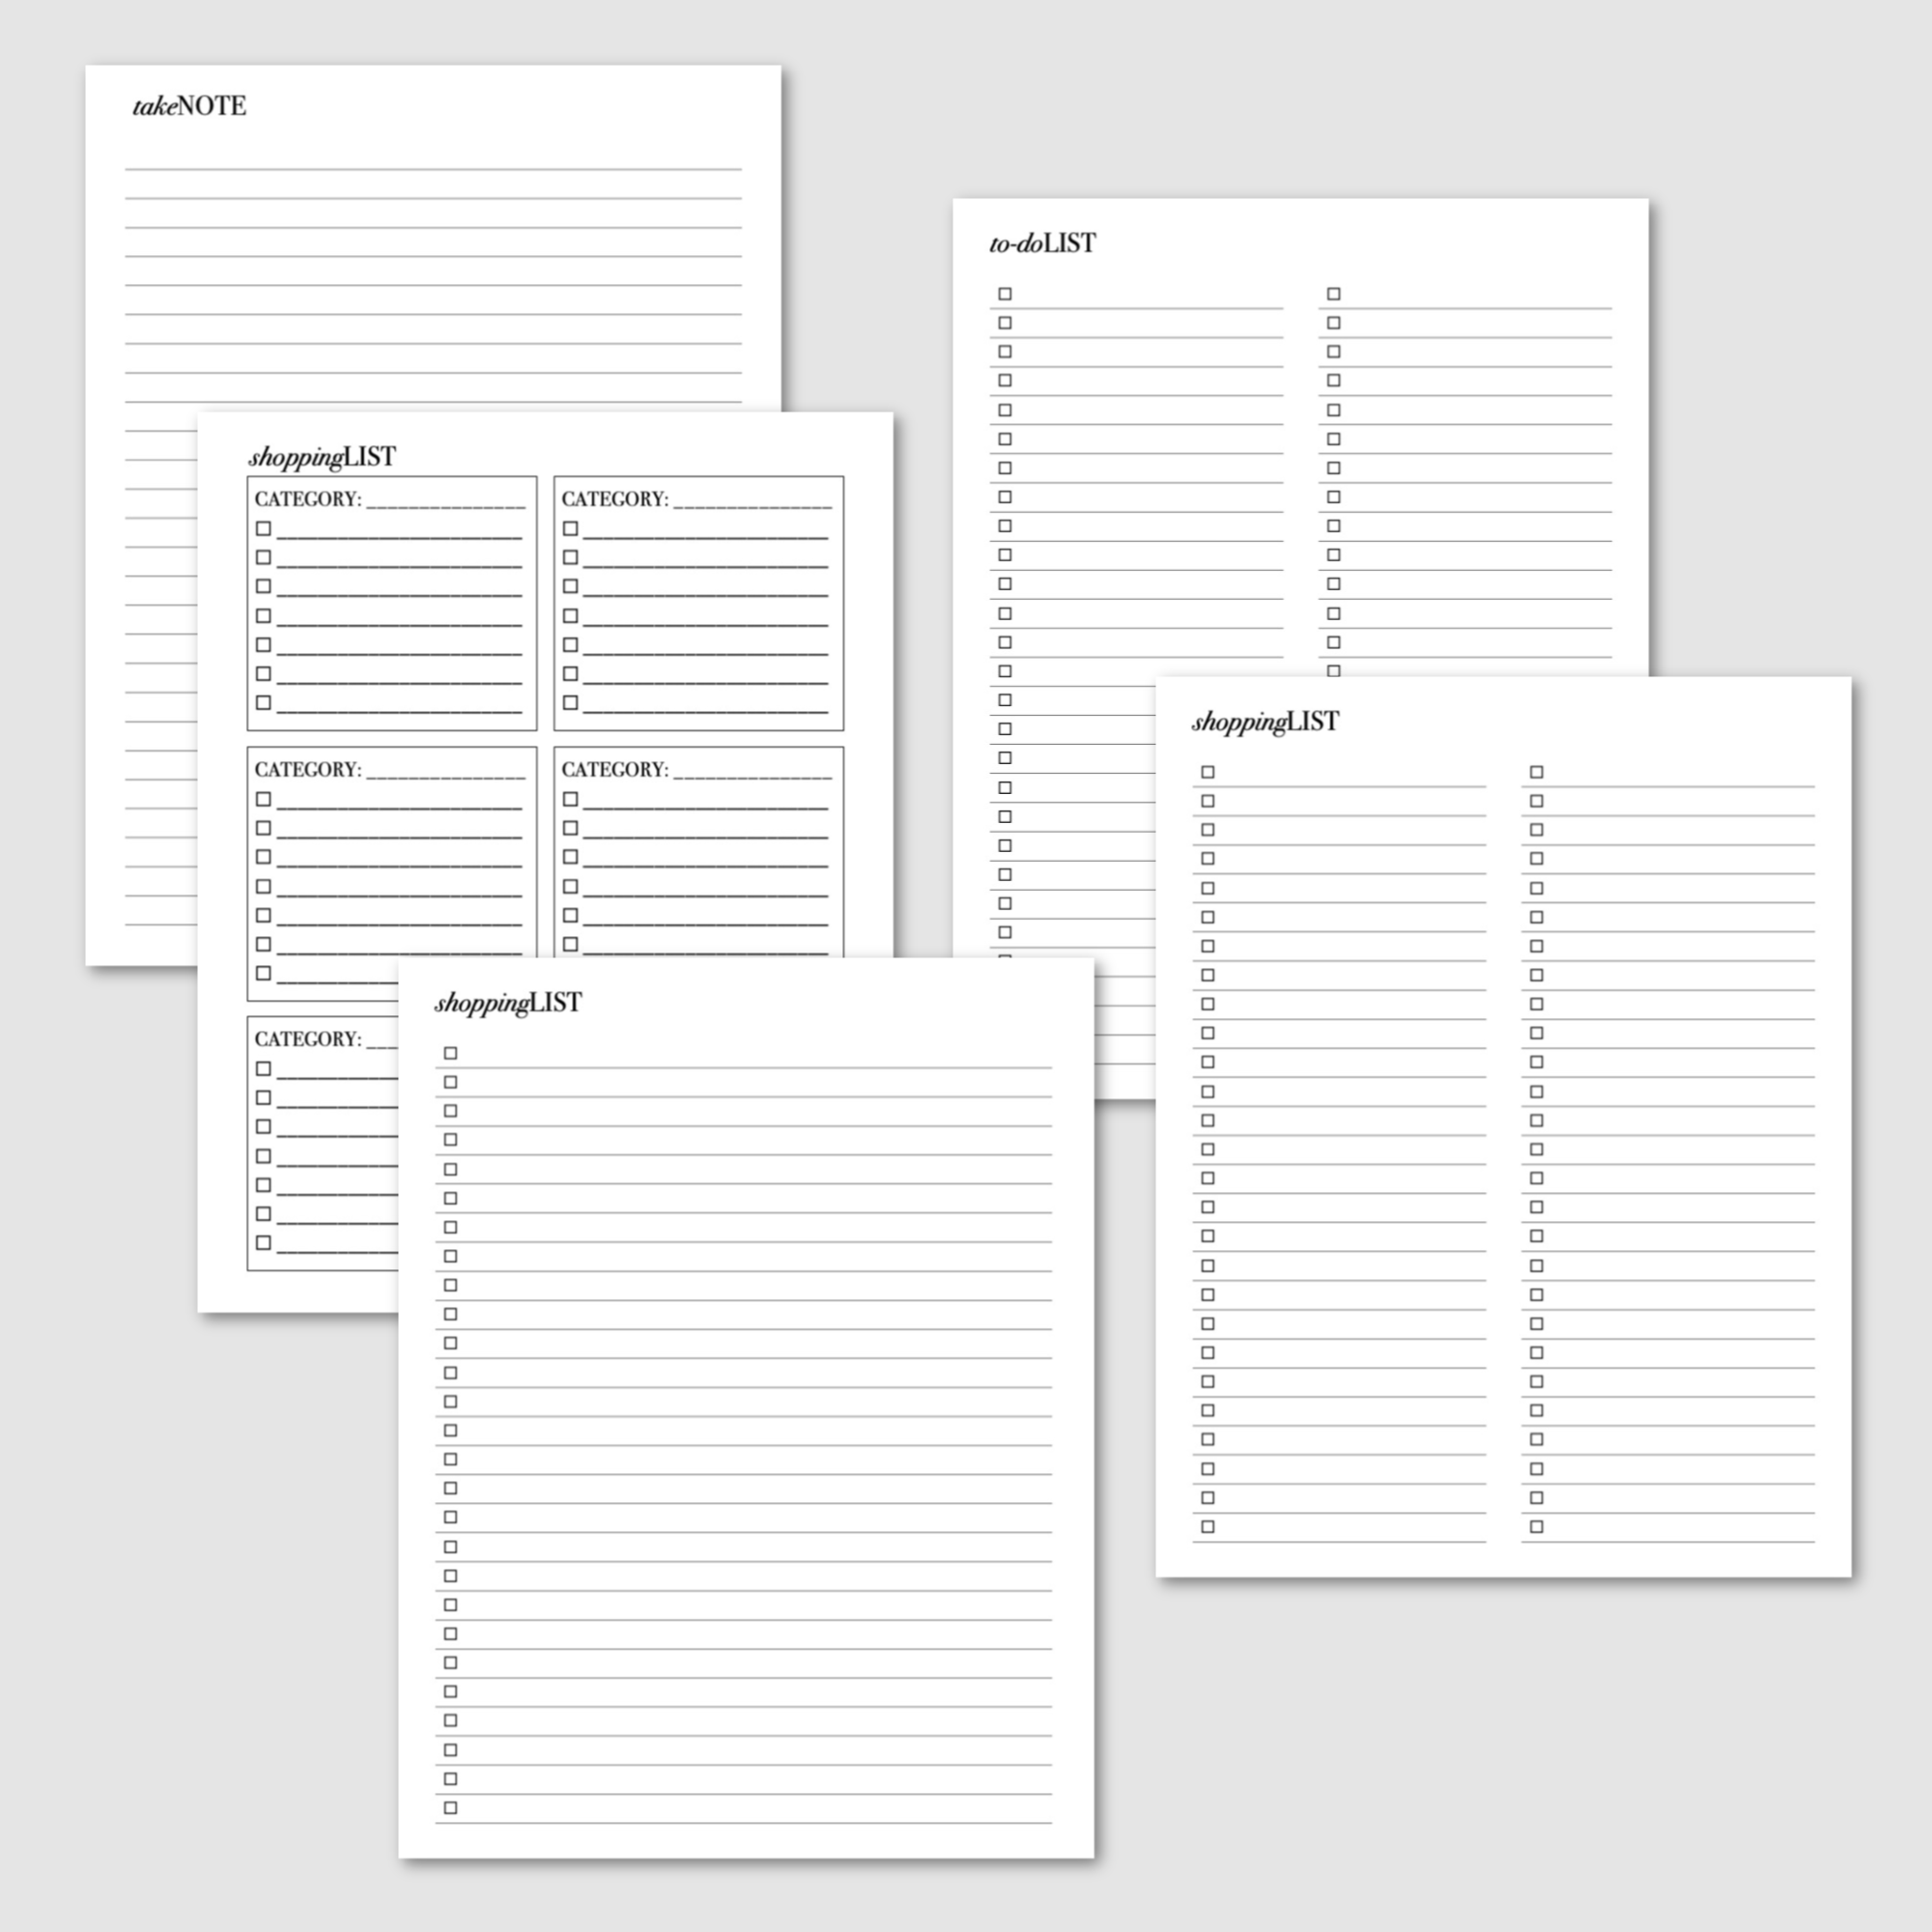 Calendars and to-do lists planner pack. Shopping list, checklist and category list, to-do list and notes pages